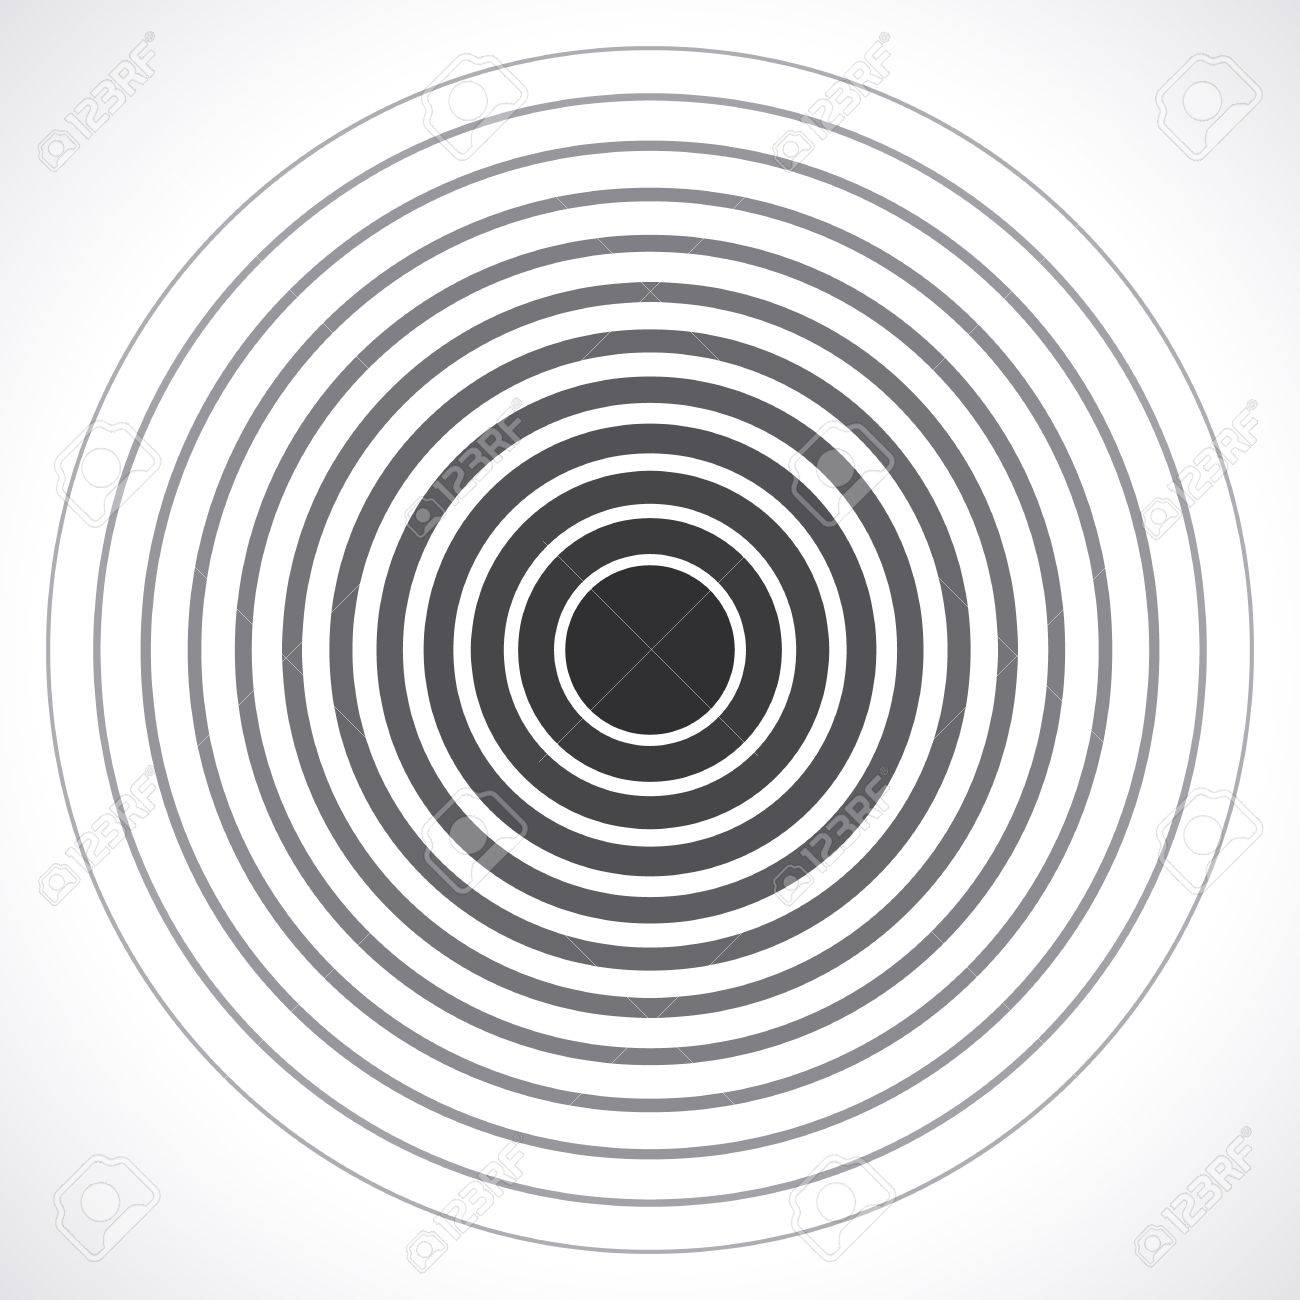 Concentric circle elements. Vector illustration for sound wave. Black and white color ring. Circle spin target. Radio station signal. Center minimal radial ripple line outline abstractionism - 53984872